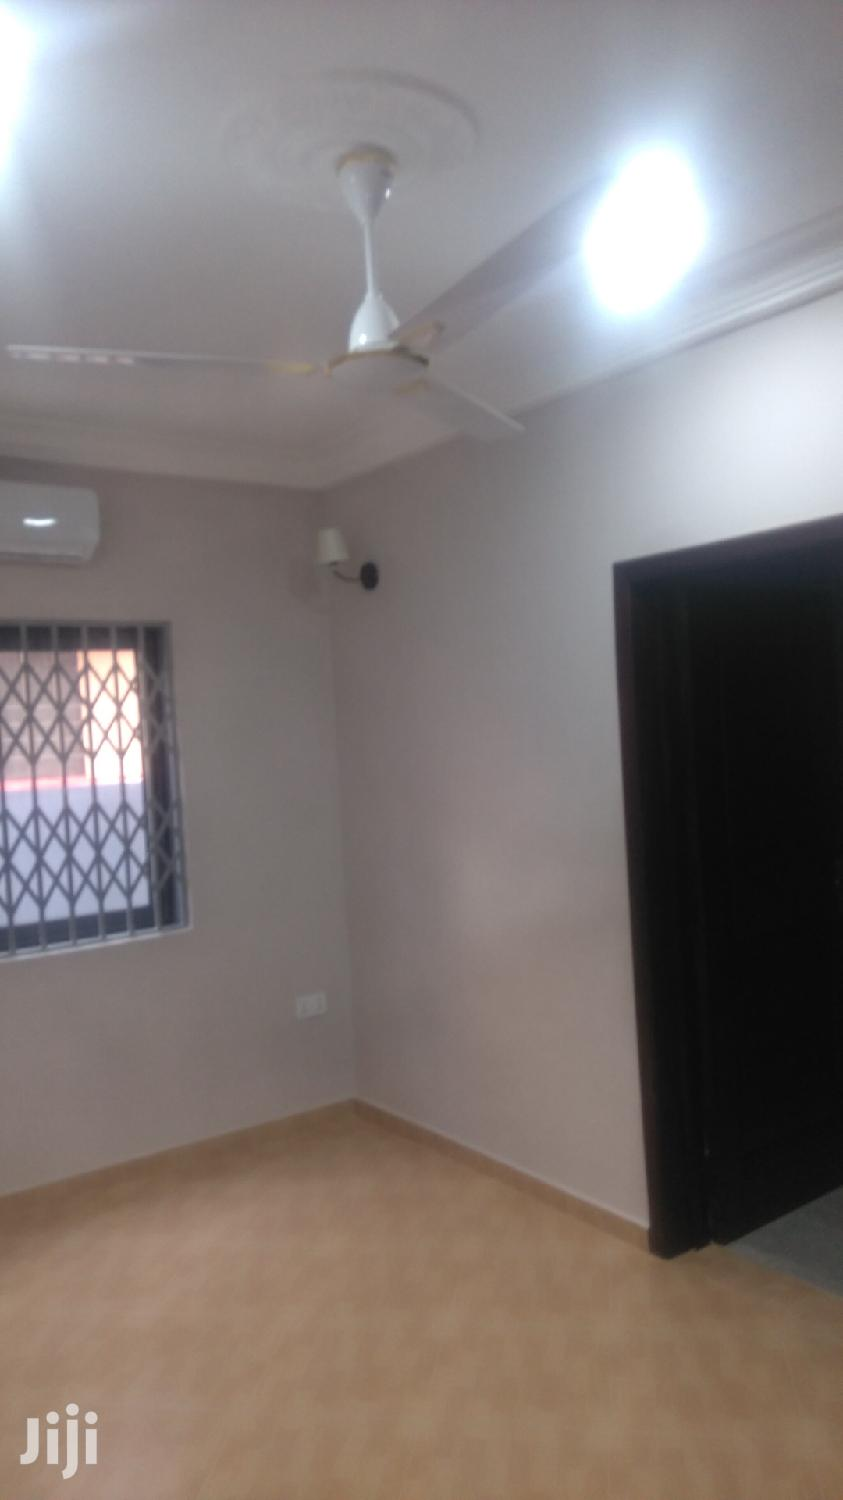 Studio Apartment at East Legon 1 Year Advance   Houses & Apartments For Rent for sale in East Legon, Greater Accra, Ghana